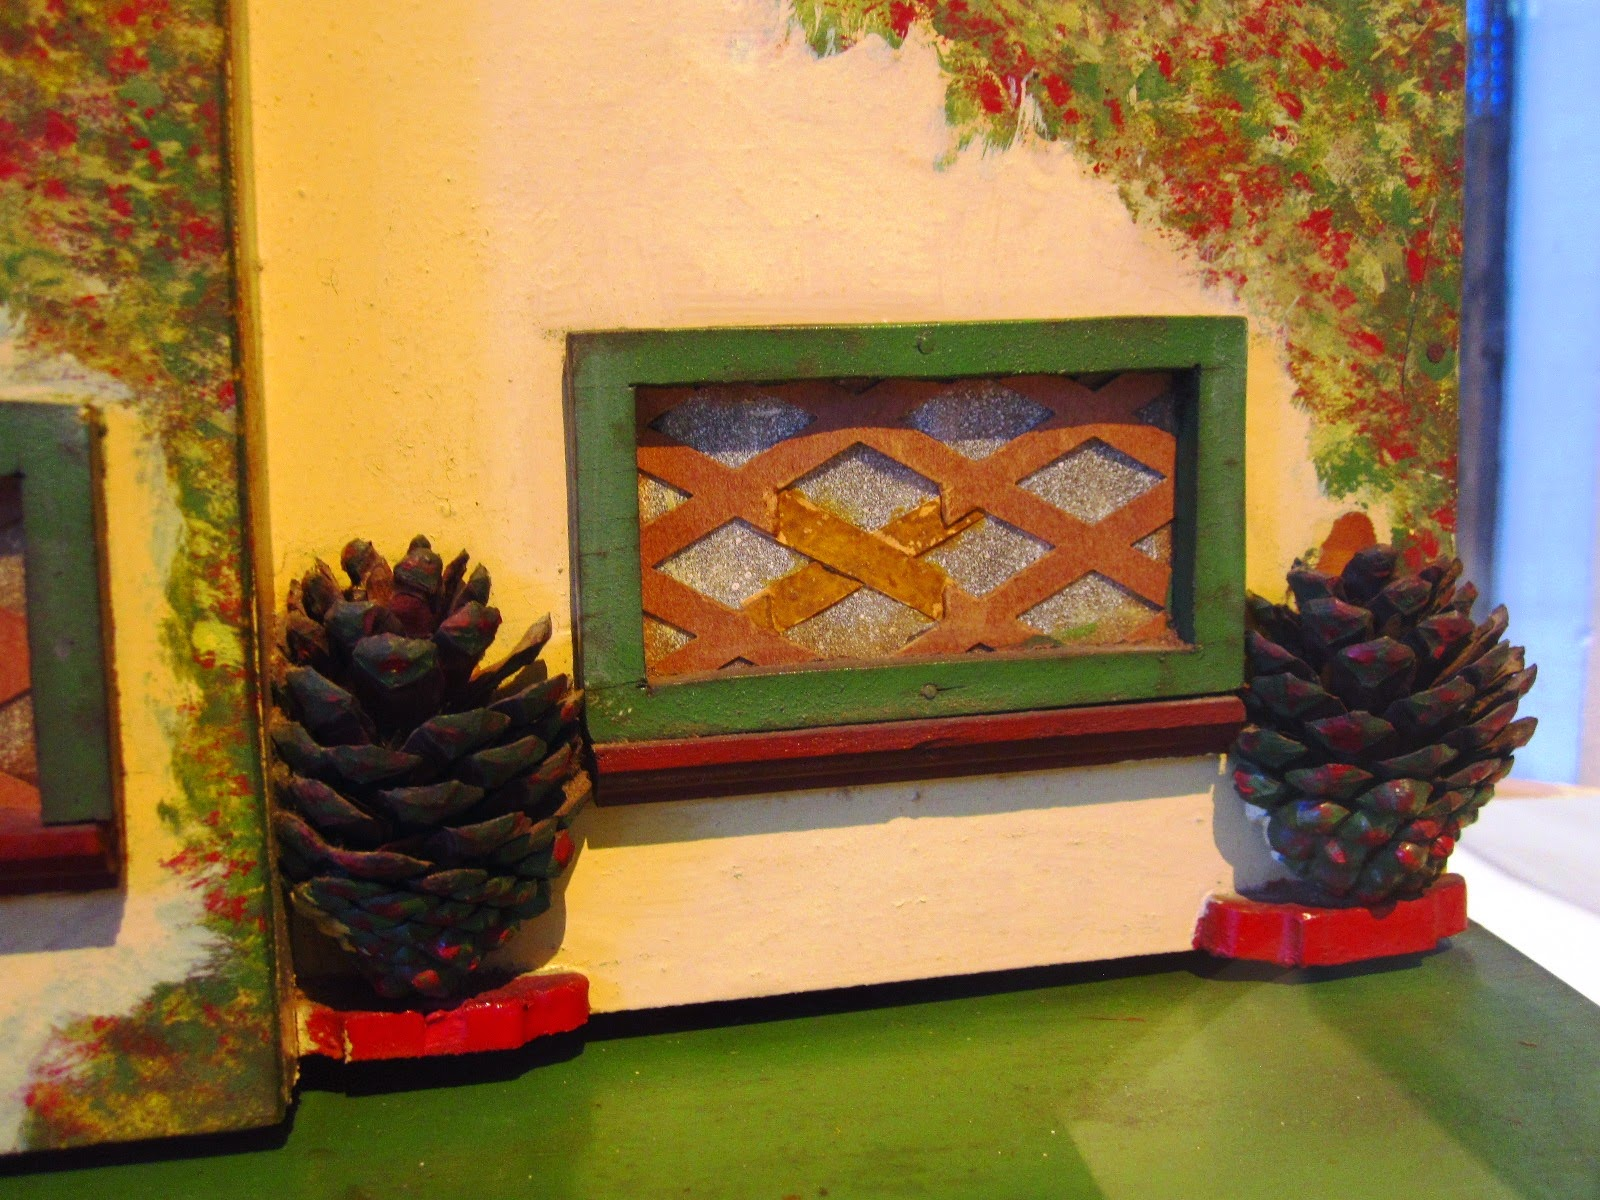 Close up of a vintage doll's house window, with trees in front of it, made of pine cones.